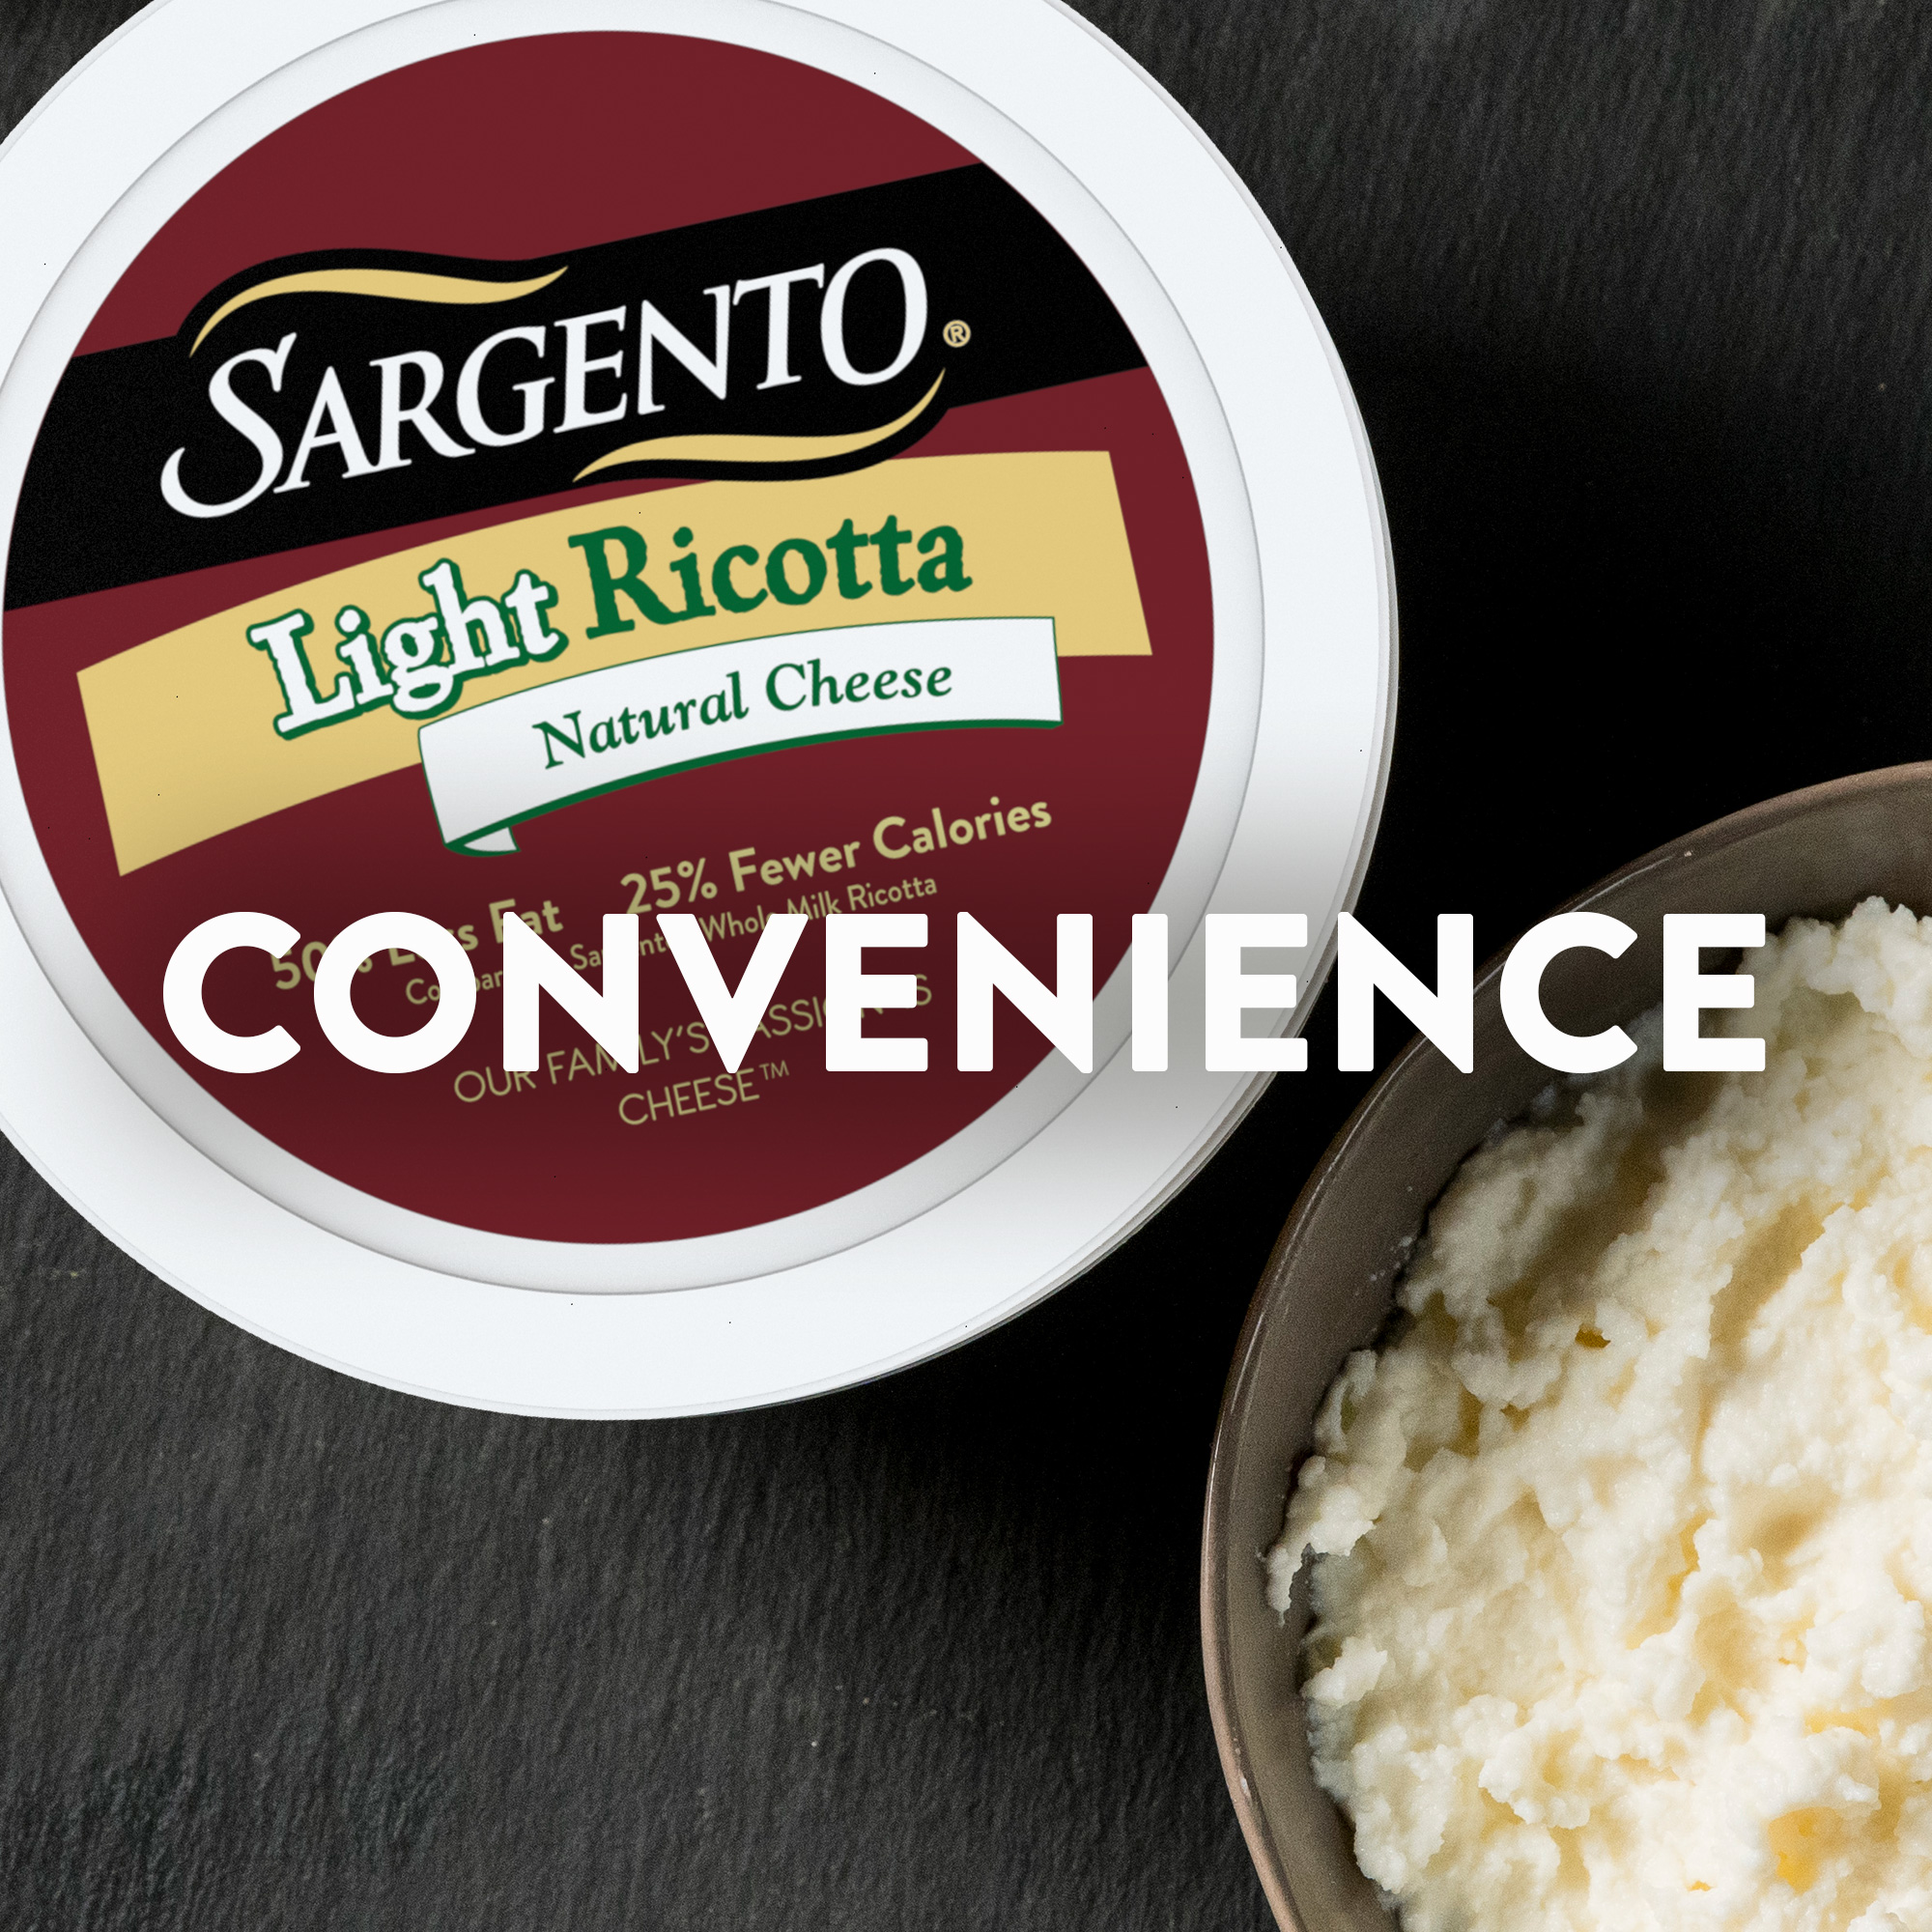 Sargento® Light Ricotta Natural Cheese